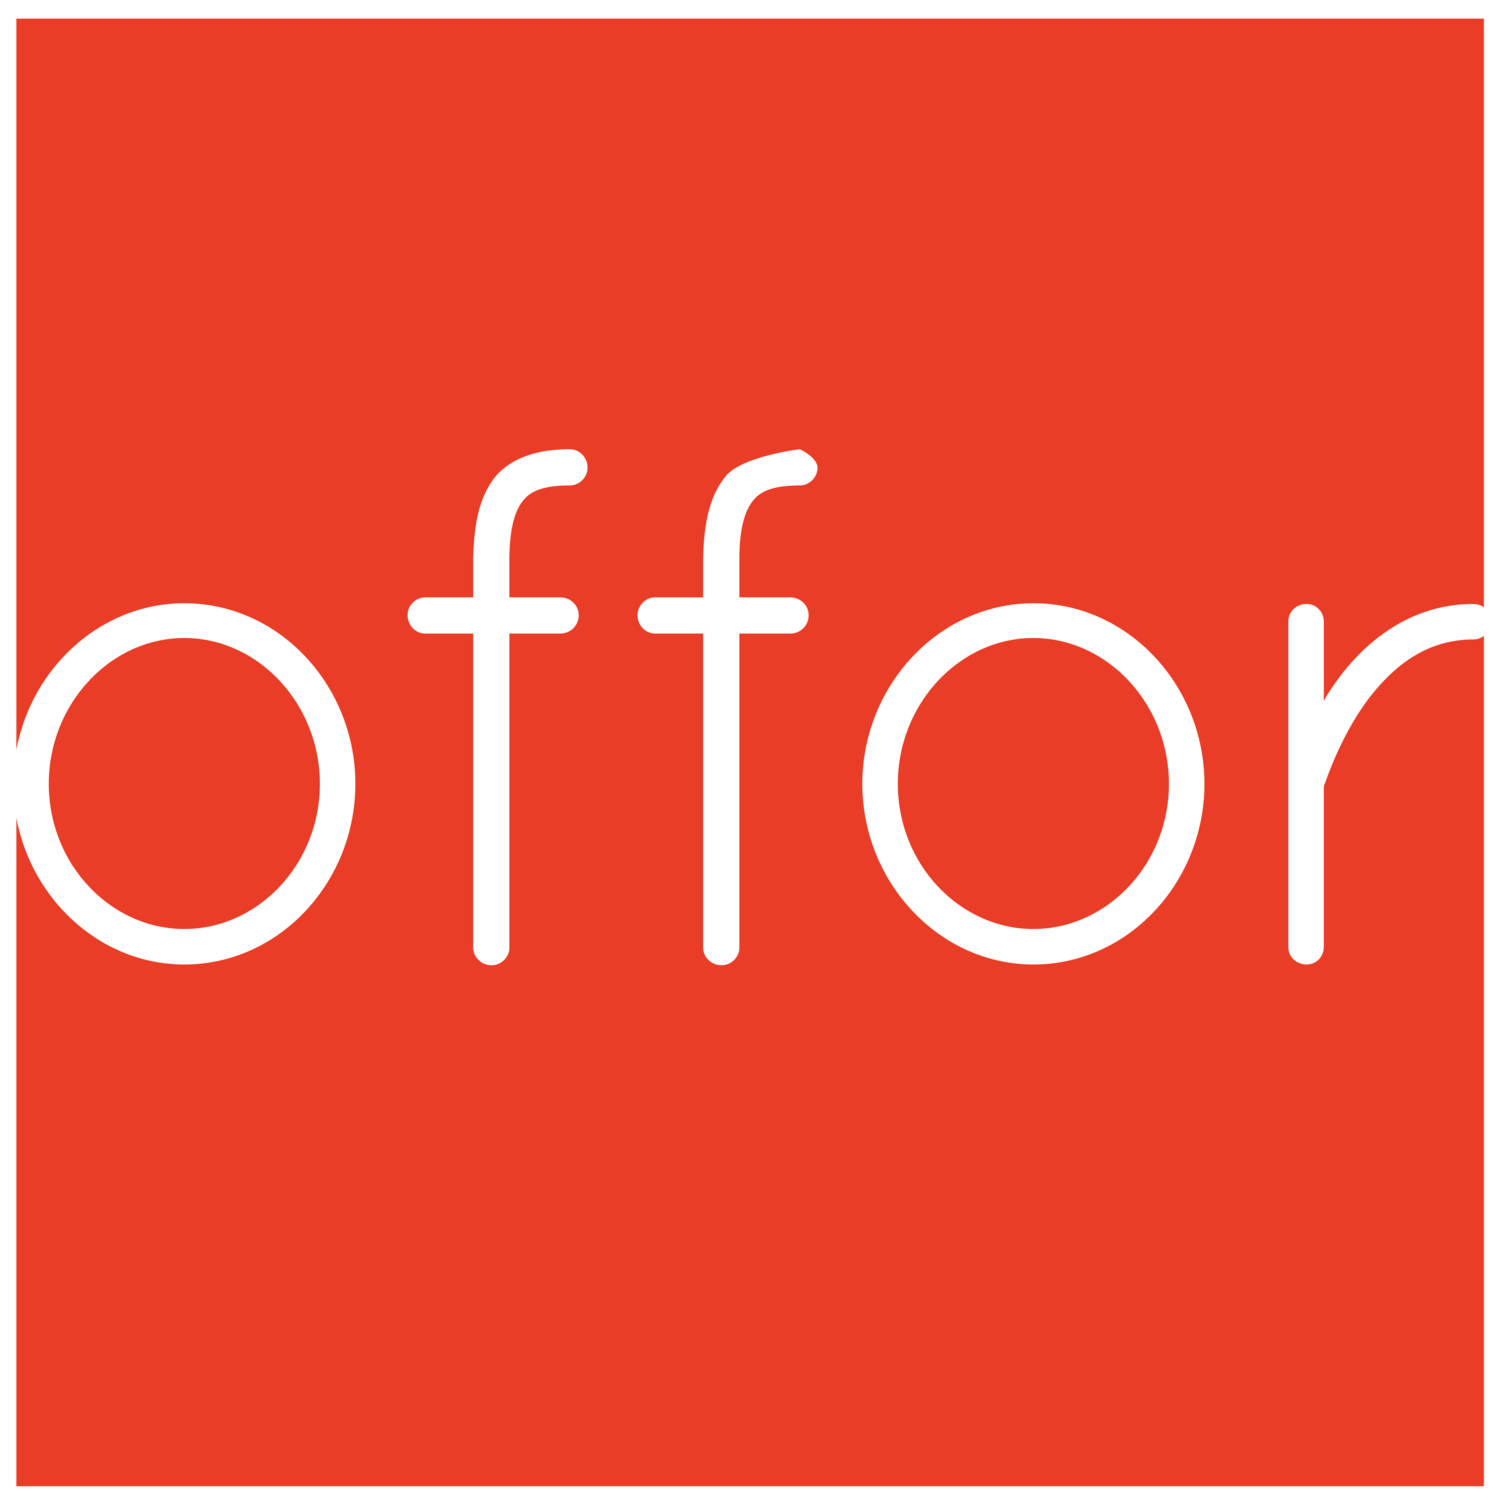 Offor - the Talent Broker company